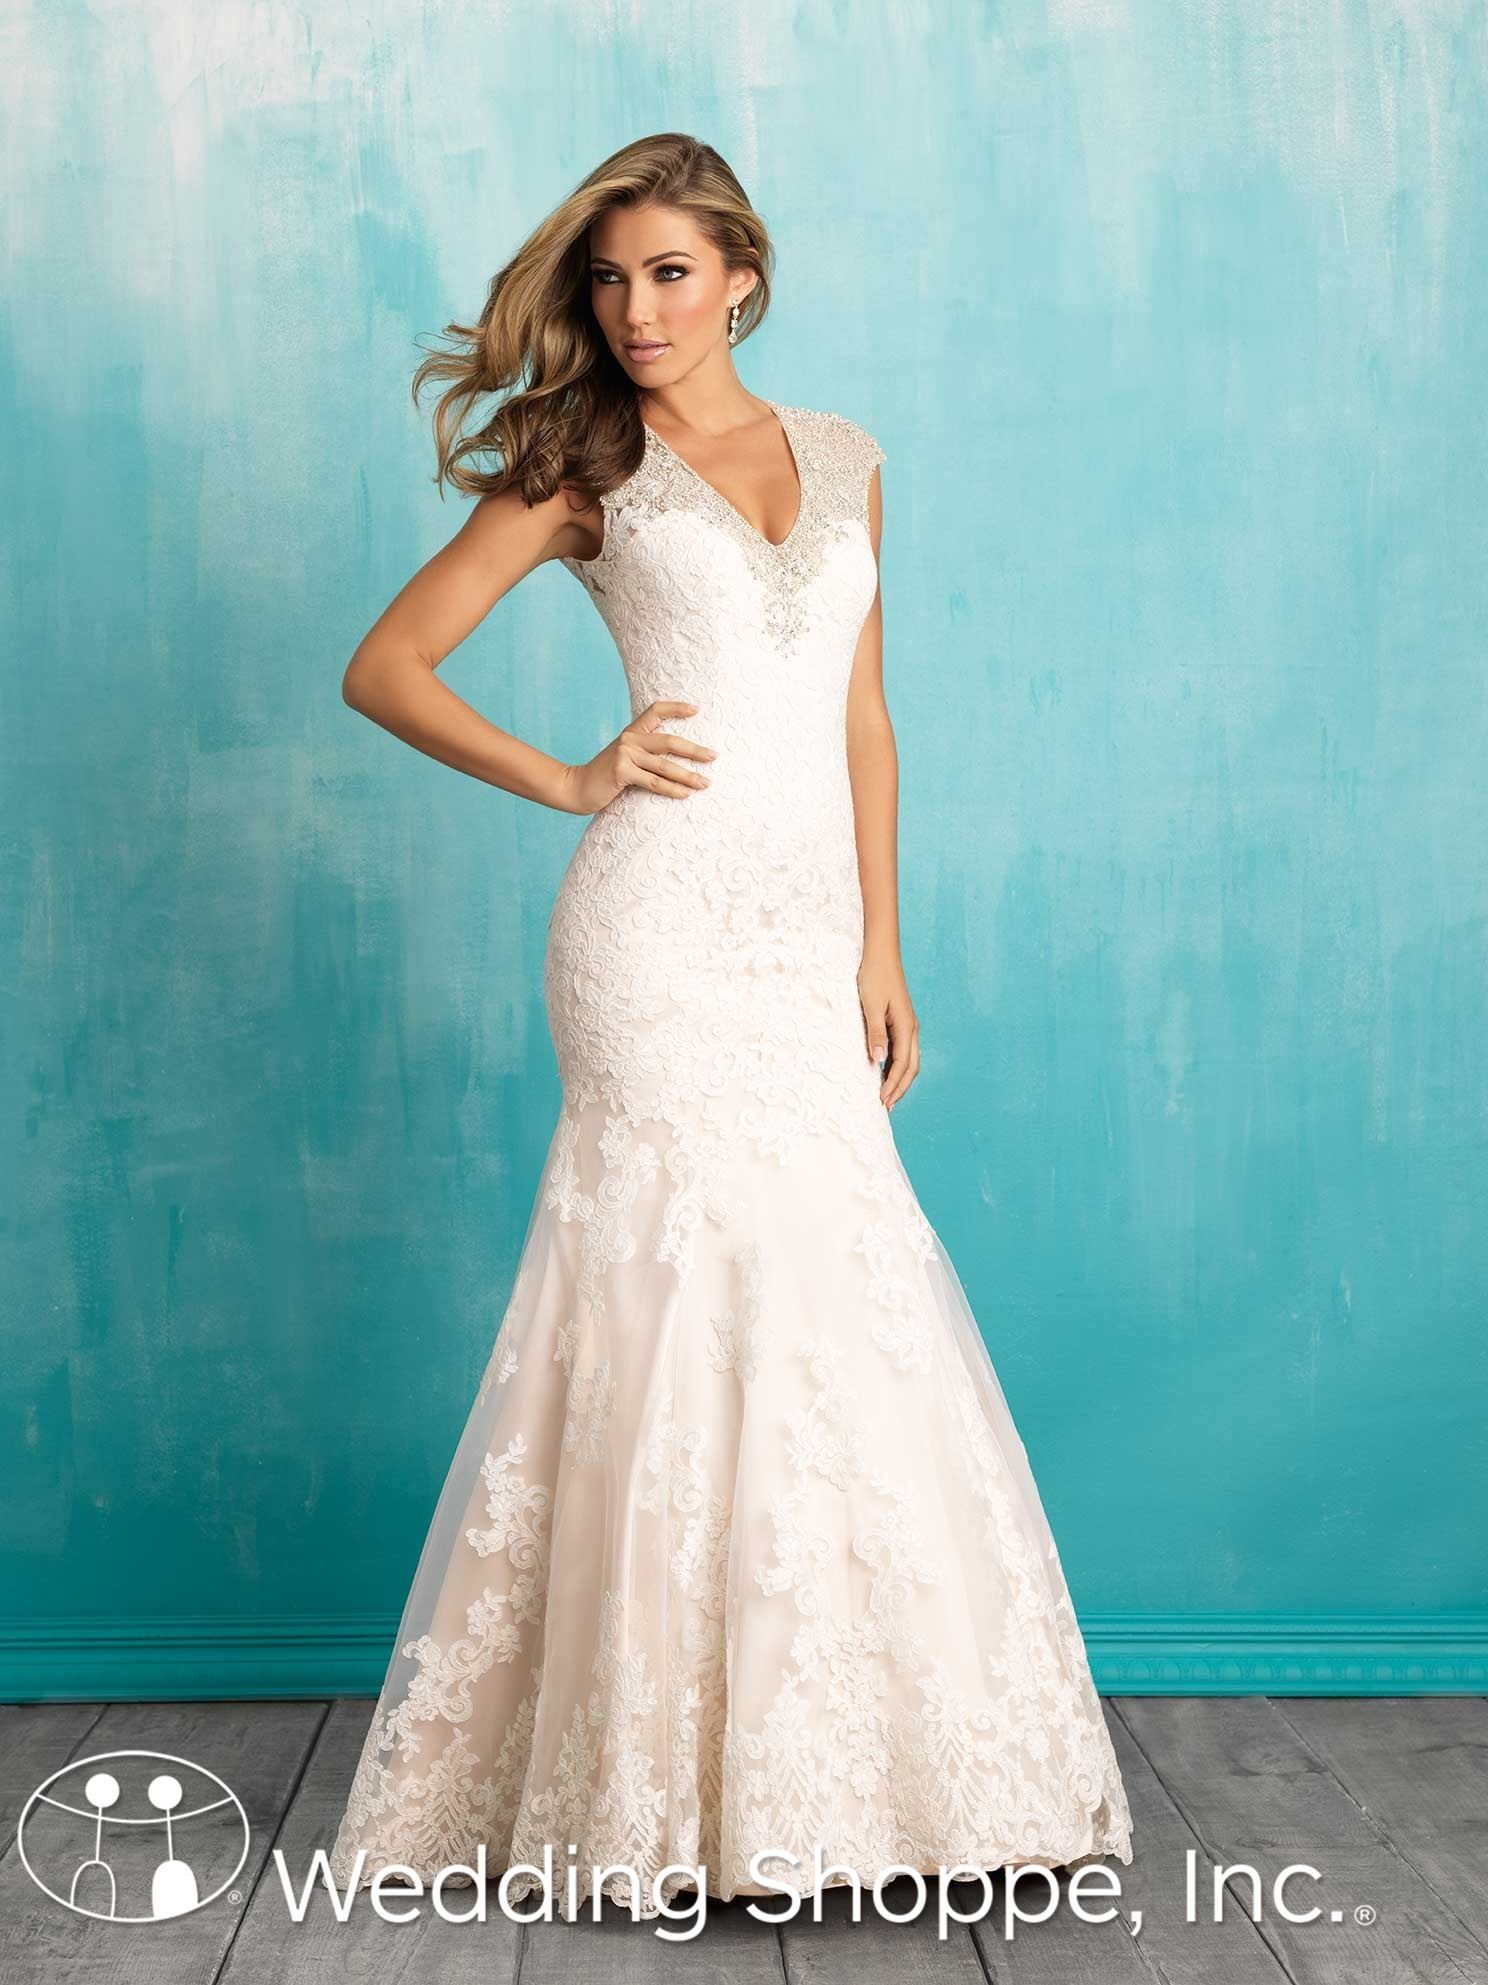 Magnificent Bridal Gowns Okc Image Collection - Colorful Wedding ...